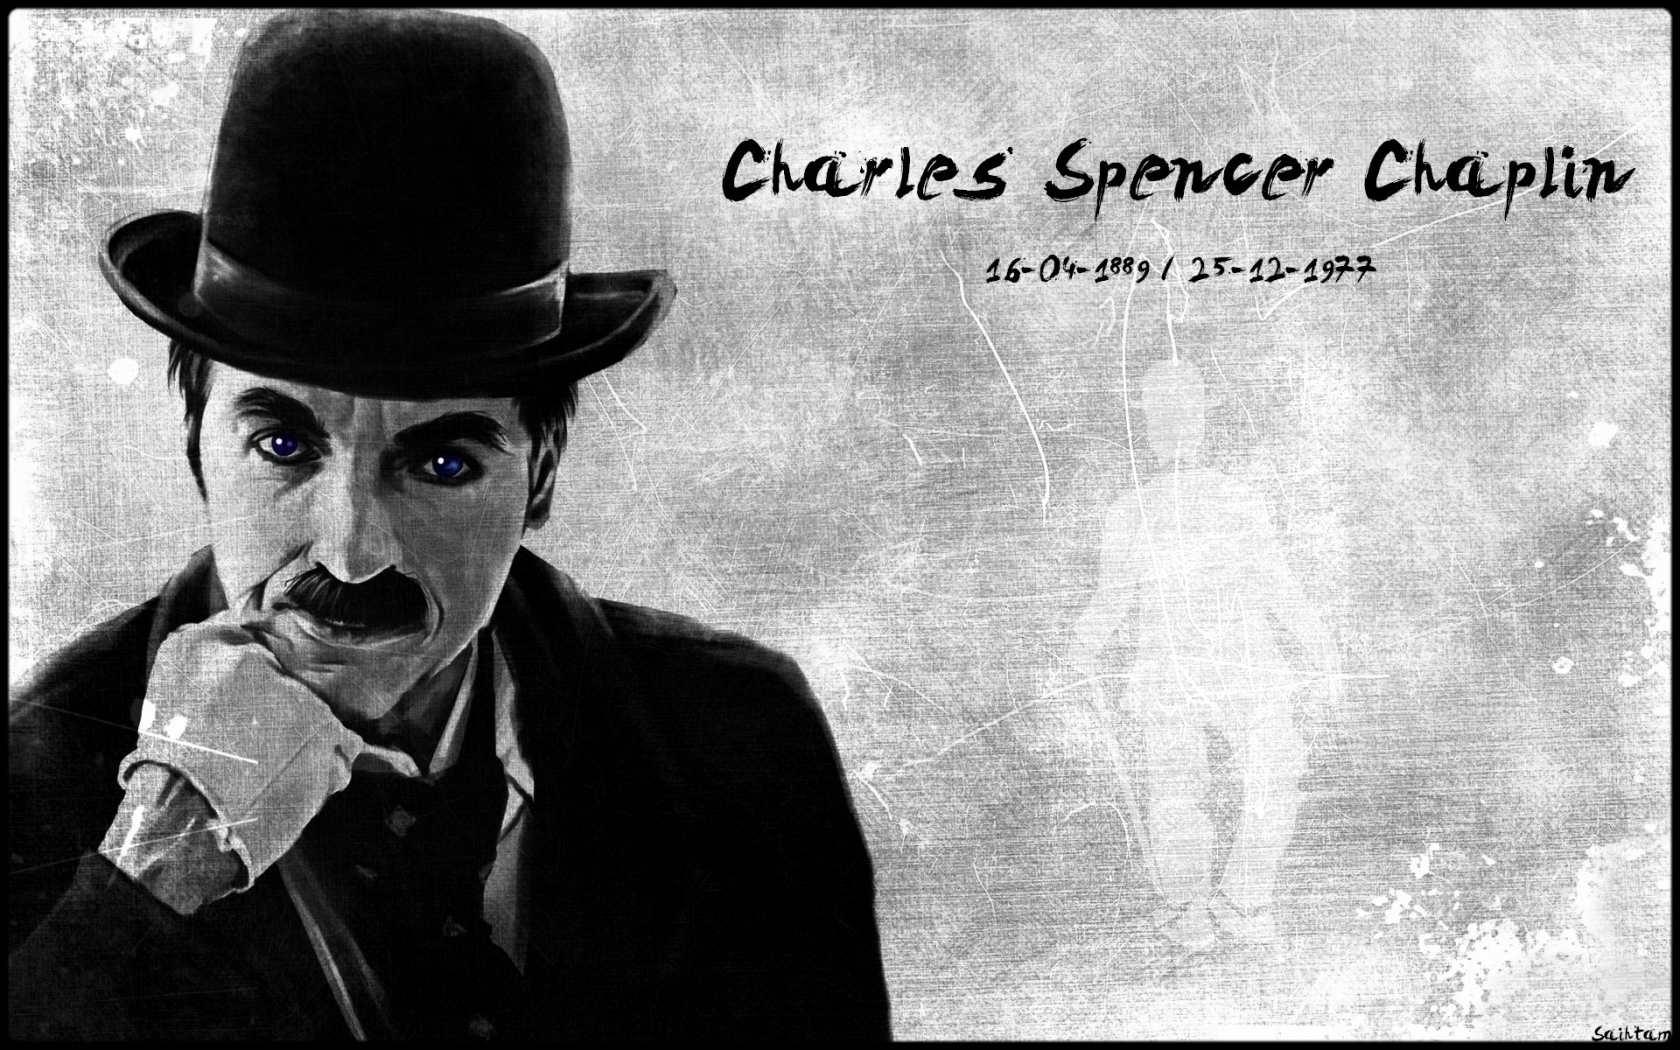 Charles Chaplin for 1680 x 1050 widescreen resolution